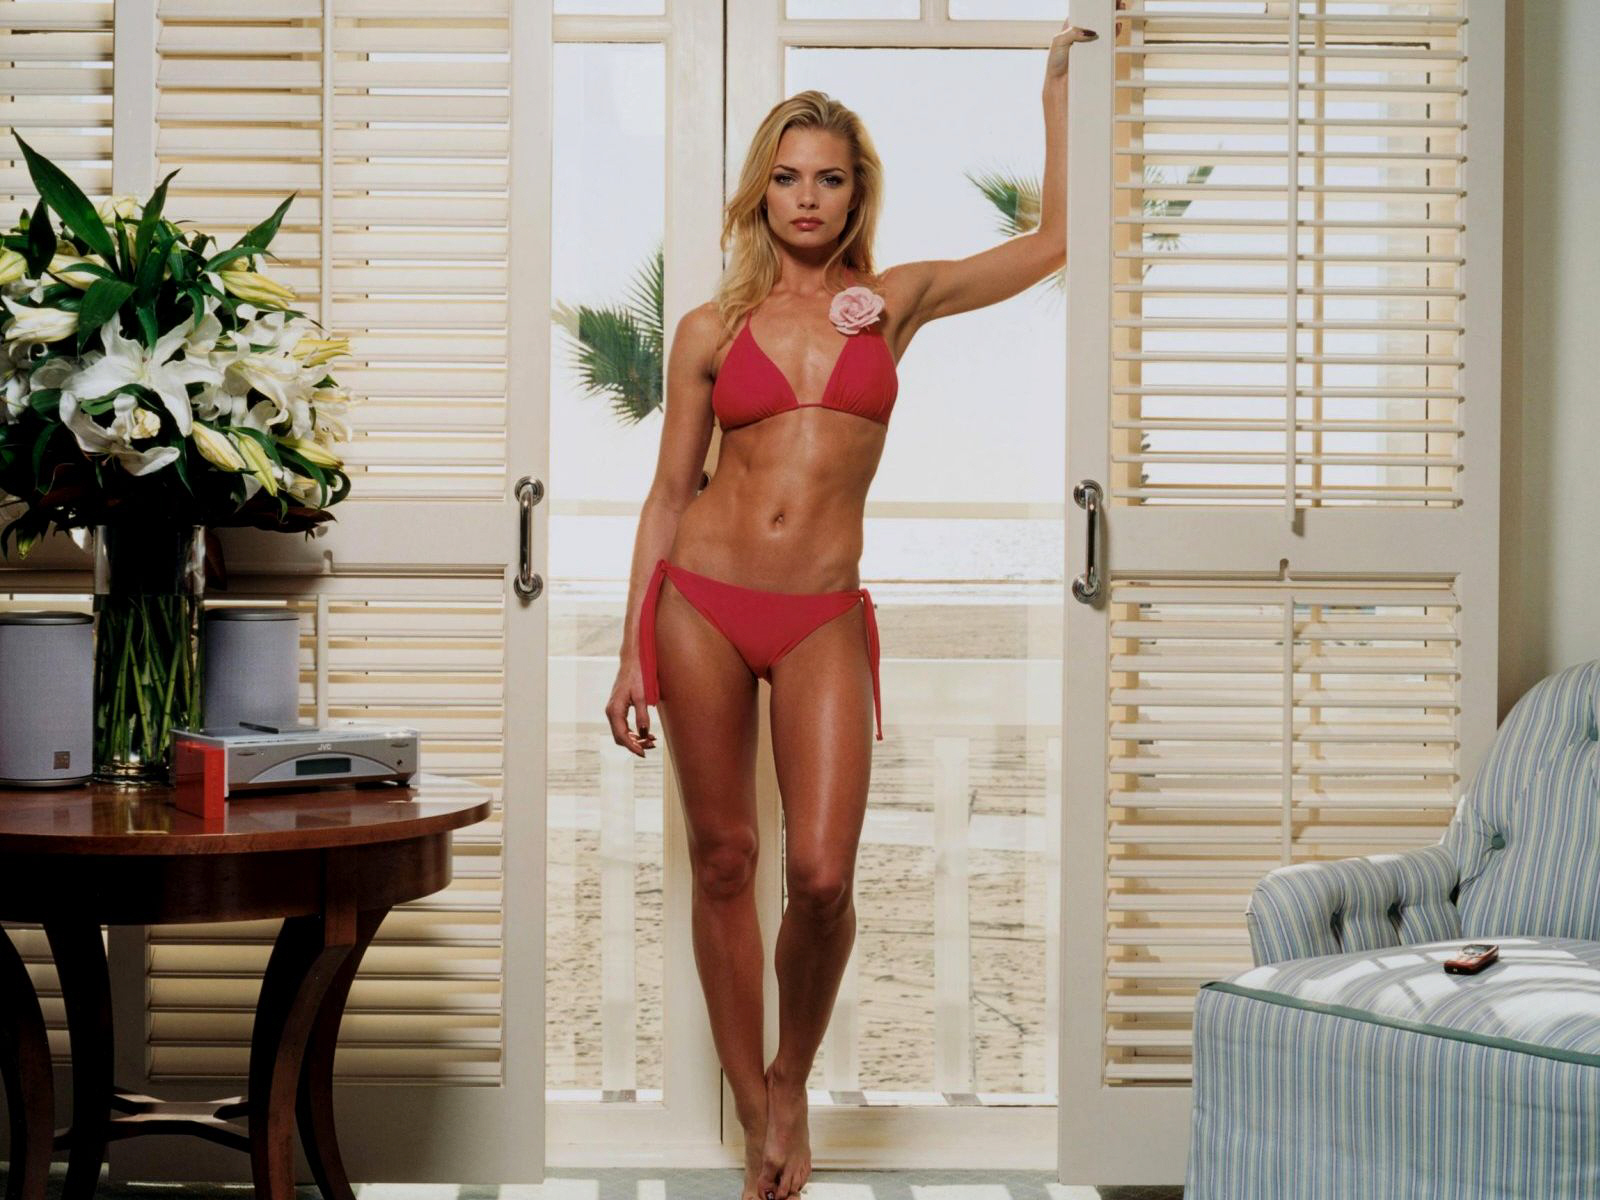 1600x1200 - Jaime Pressly Wallpapers 33